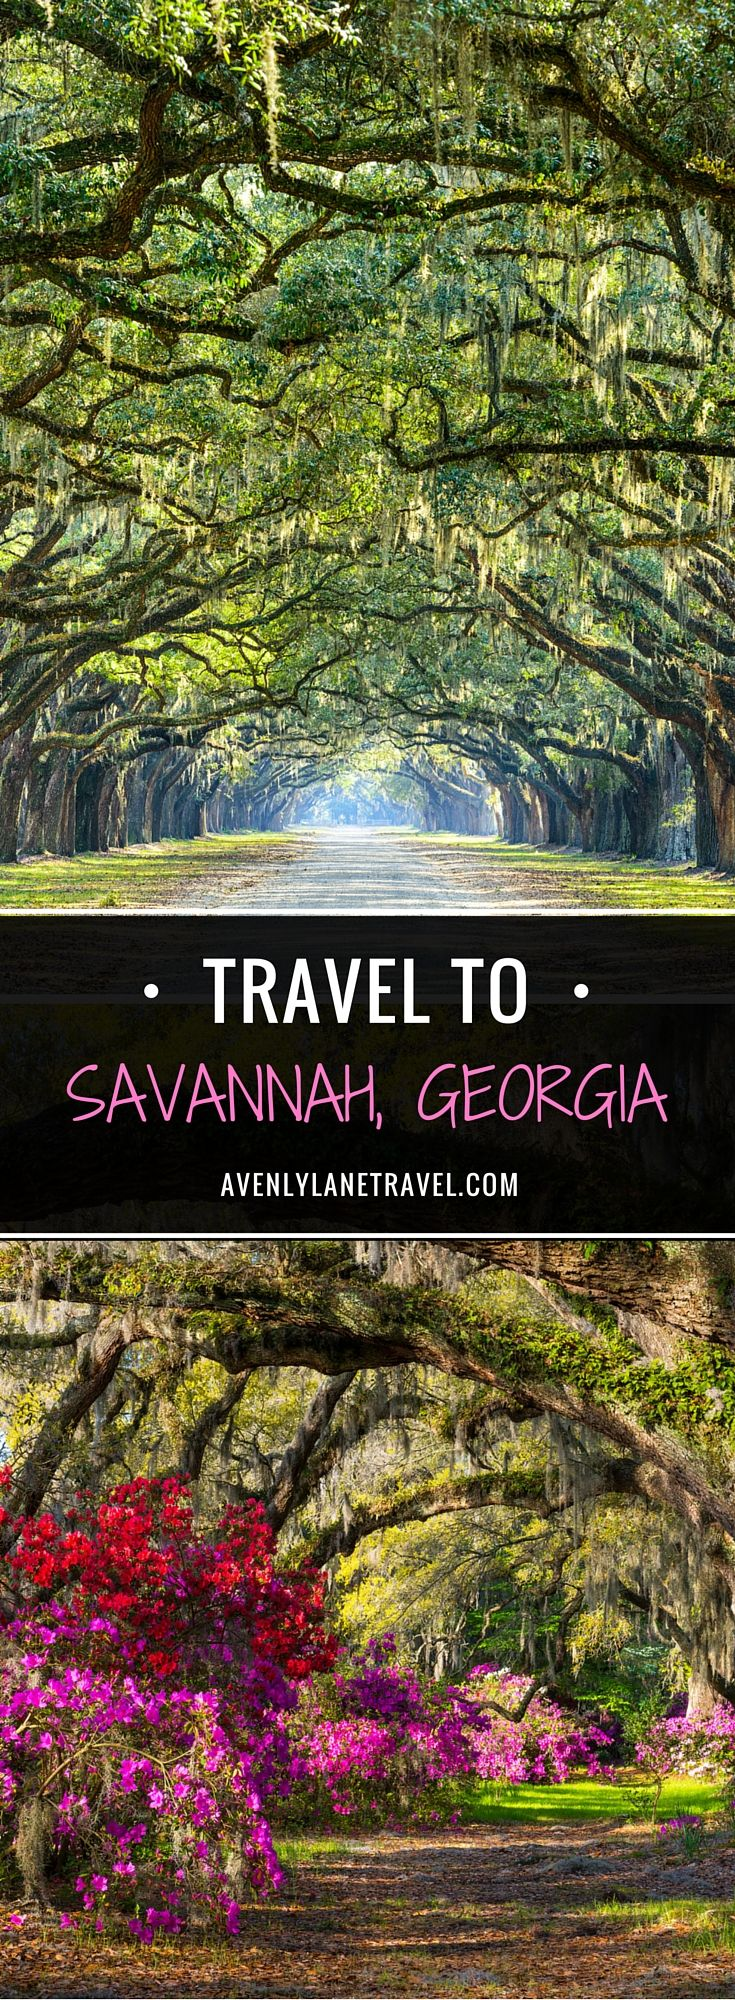 Even though Savannah is a Southern tourist hot spot, it unfortunately doesn't seem to get as much attention as New Orleans. When you picture the antebellum South, Savannah is exactly what should pop into your head. Click through to read the full post!